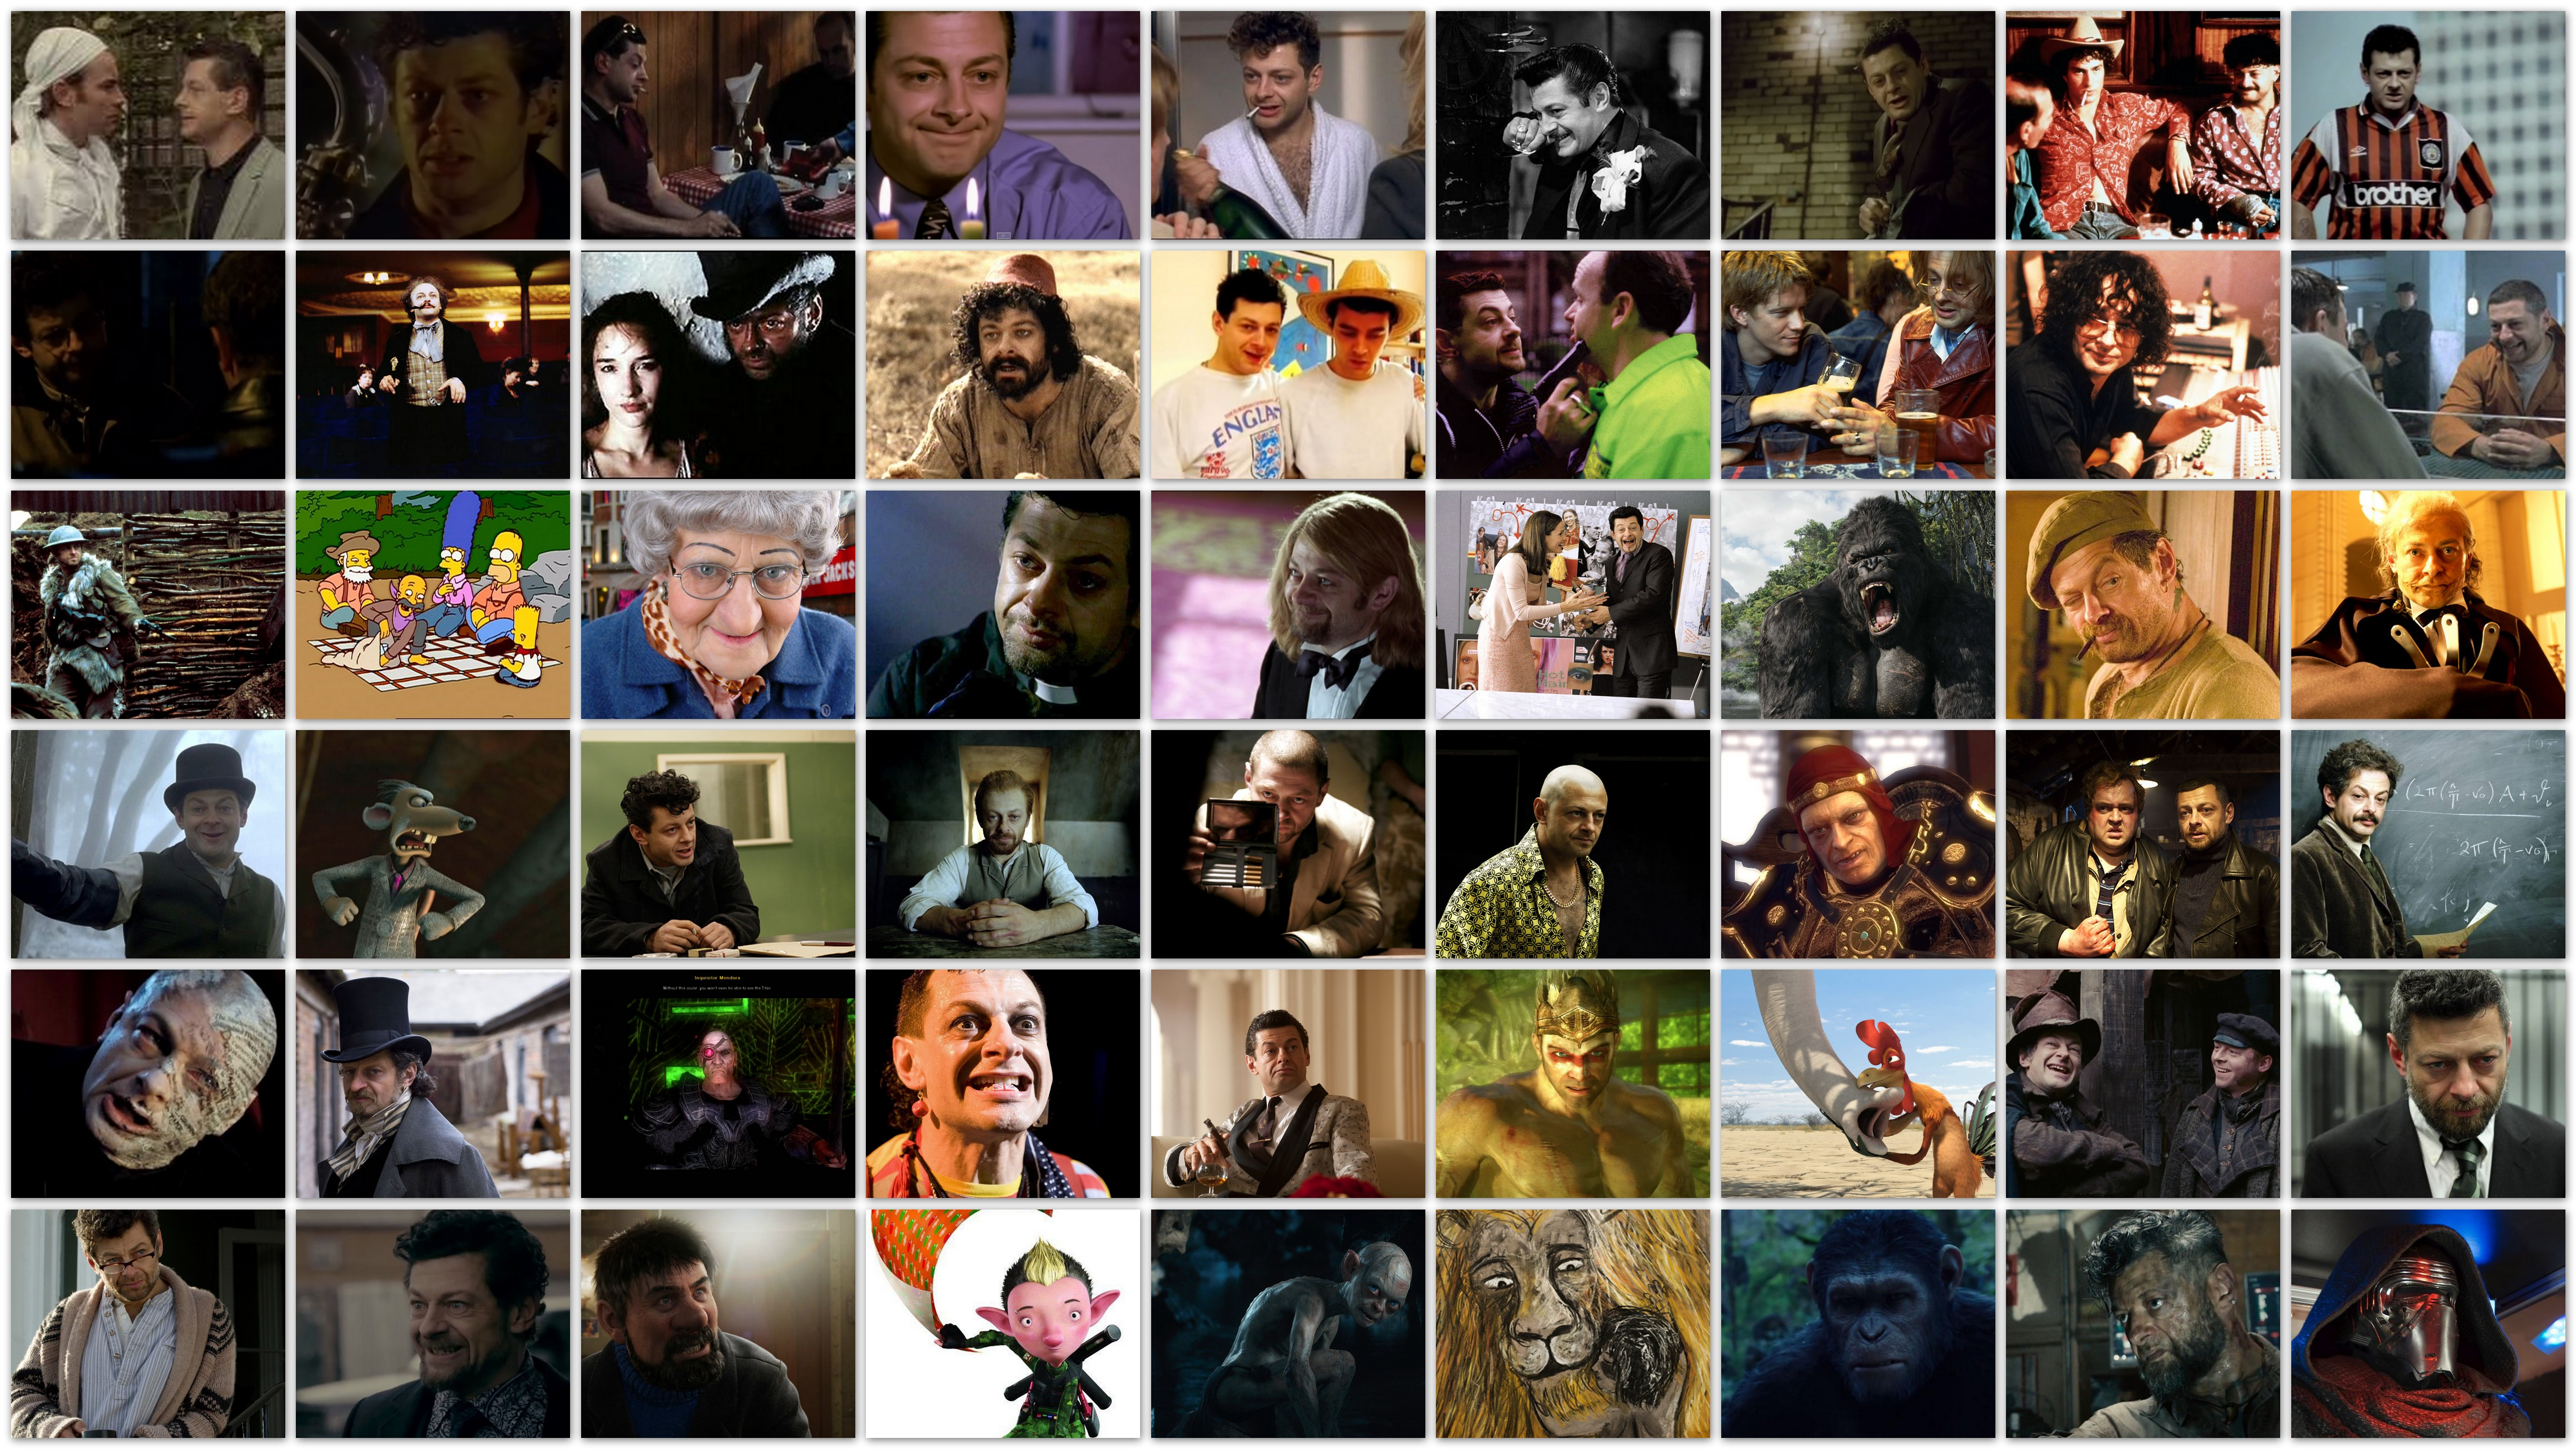 Andy Serkis movies overview